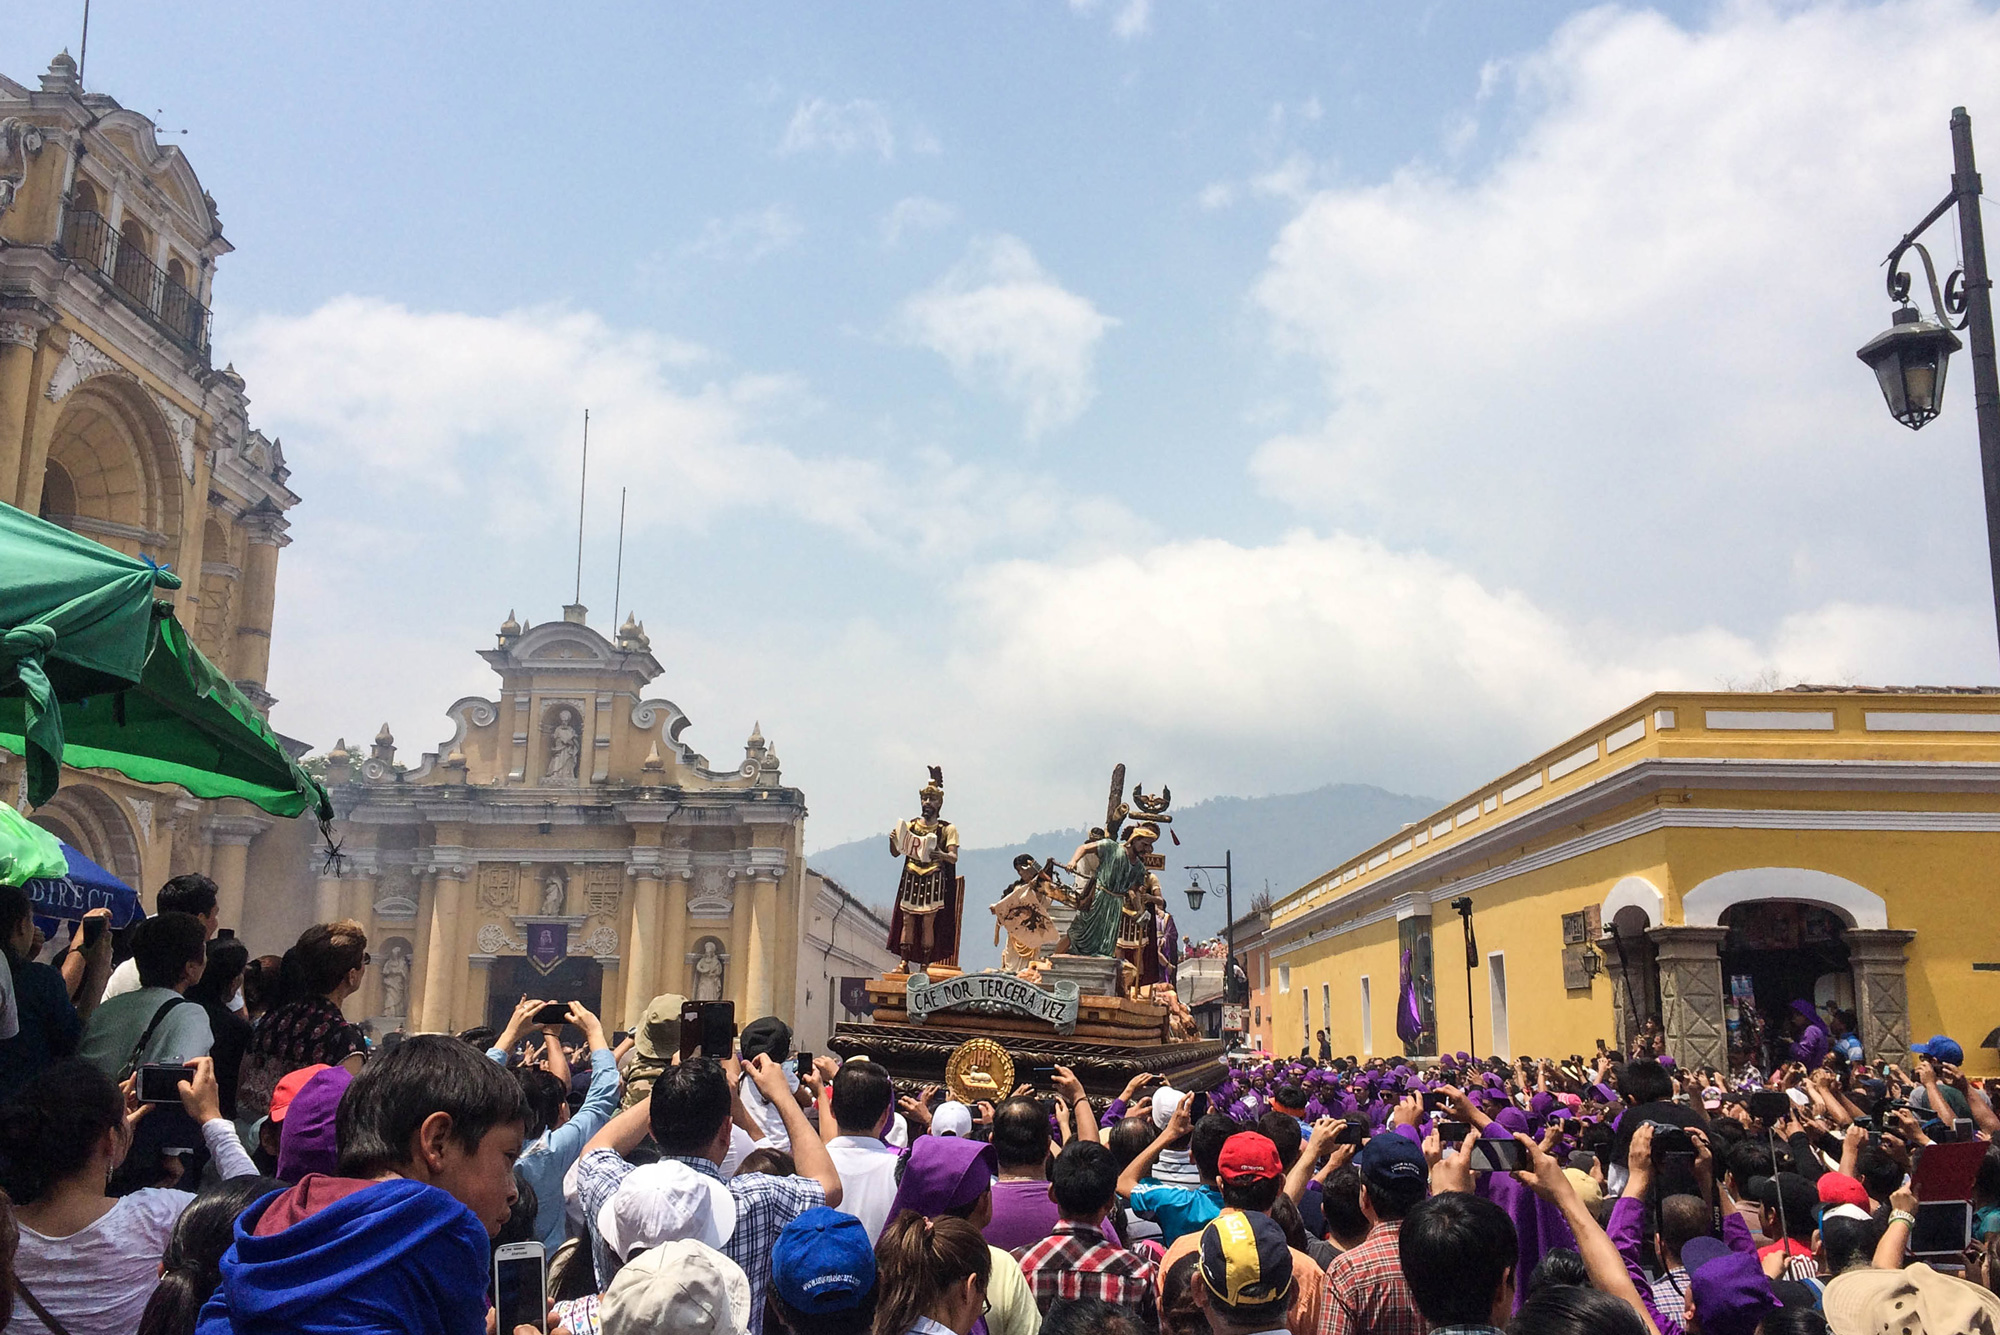 Large andas ( oats) depicting events around the death of Jesus are carried by people through the streets while bands play and church members carry banners and incense. Those carrying the andas walk on the alfombras while other members walk around them.